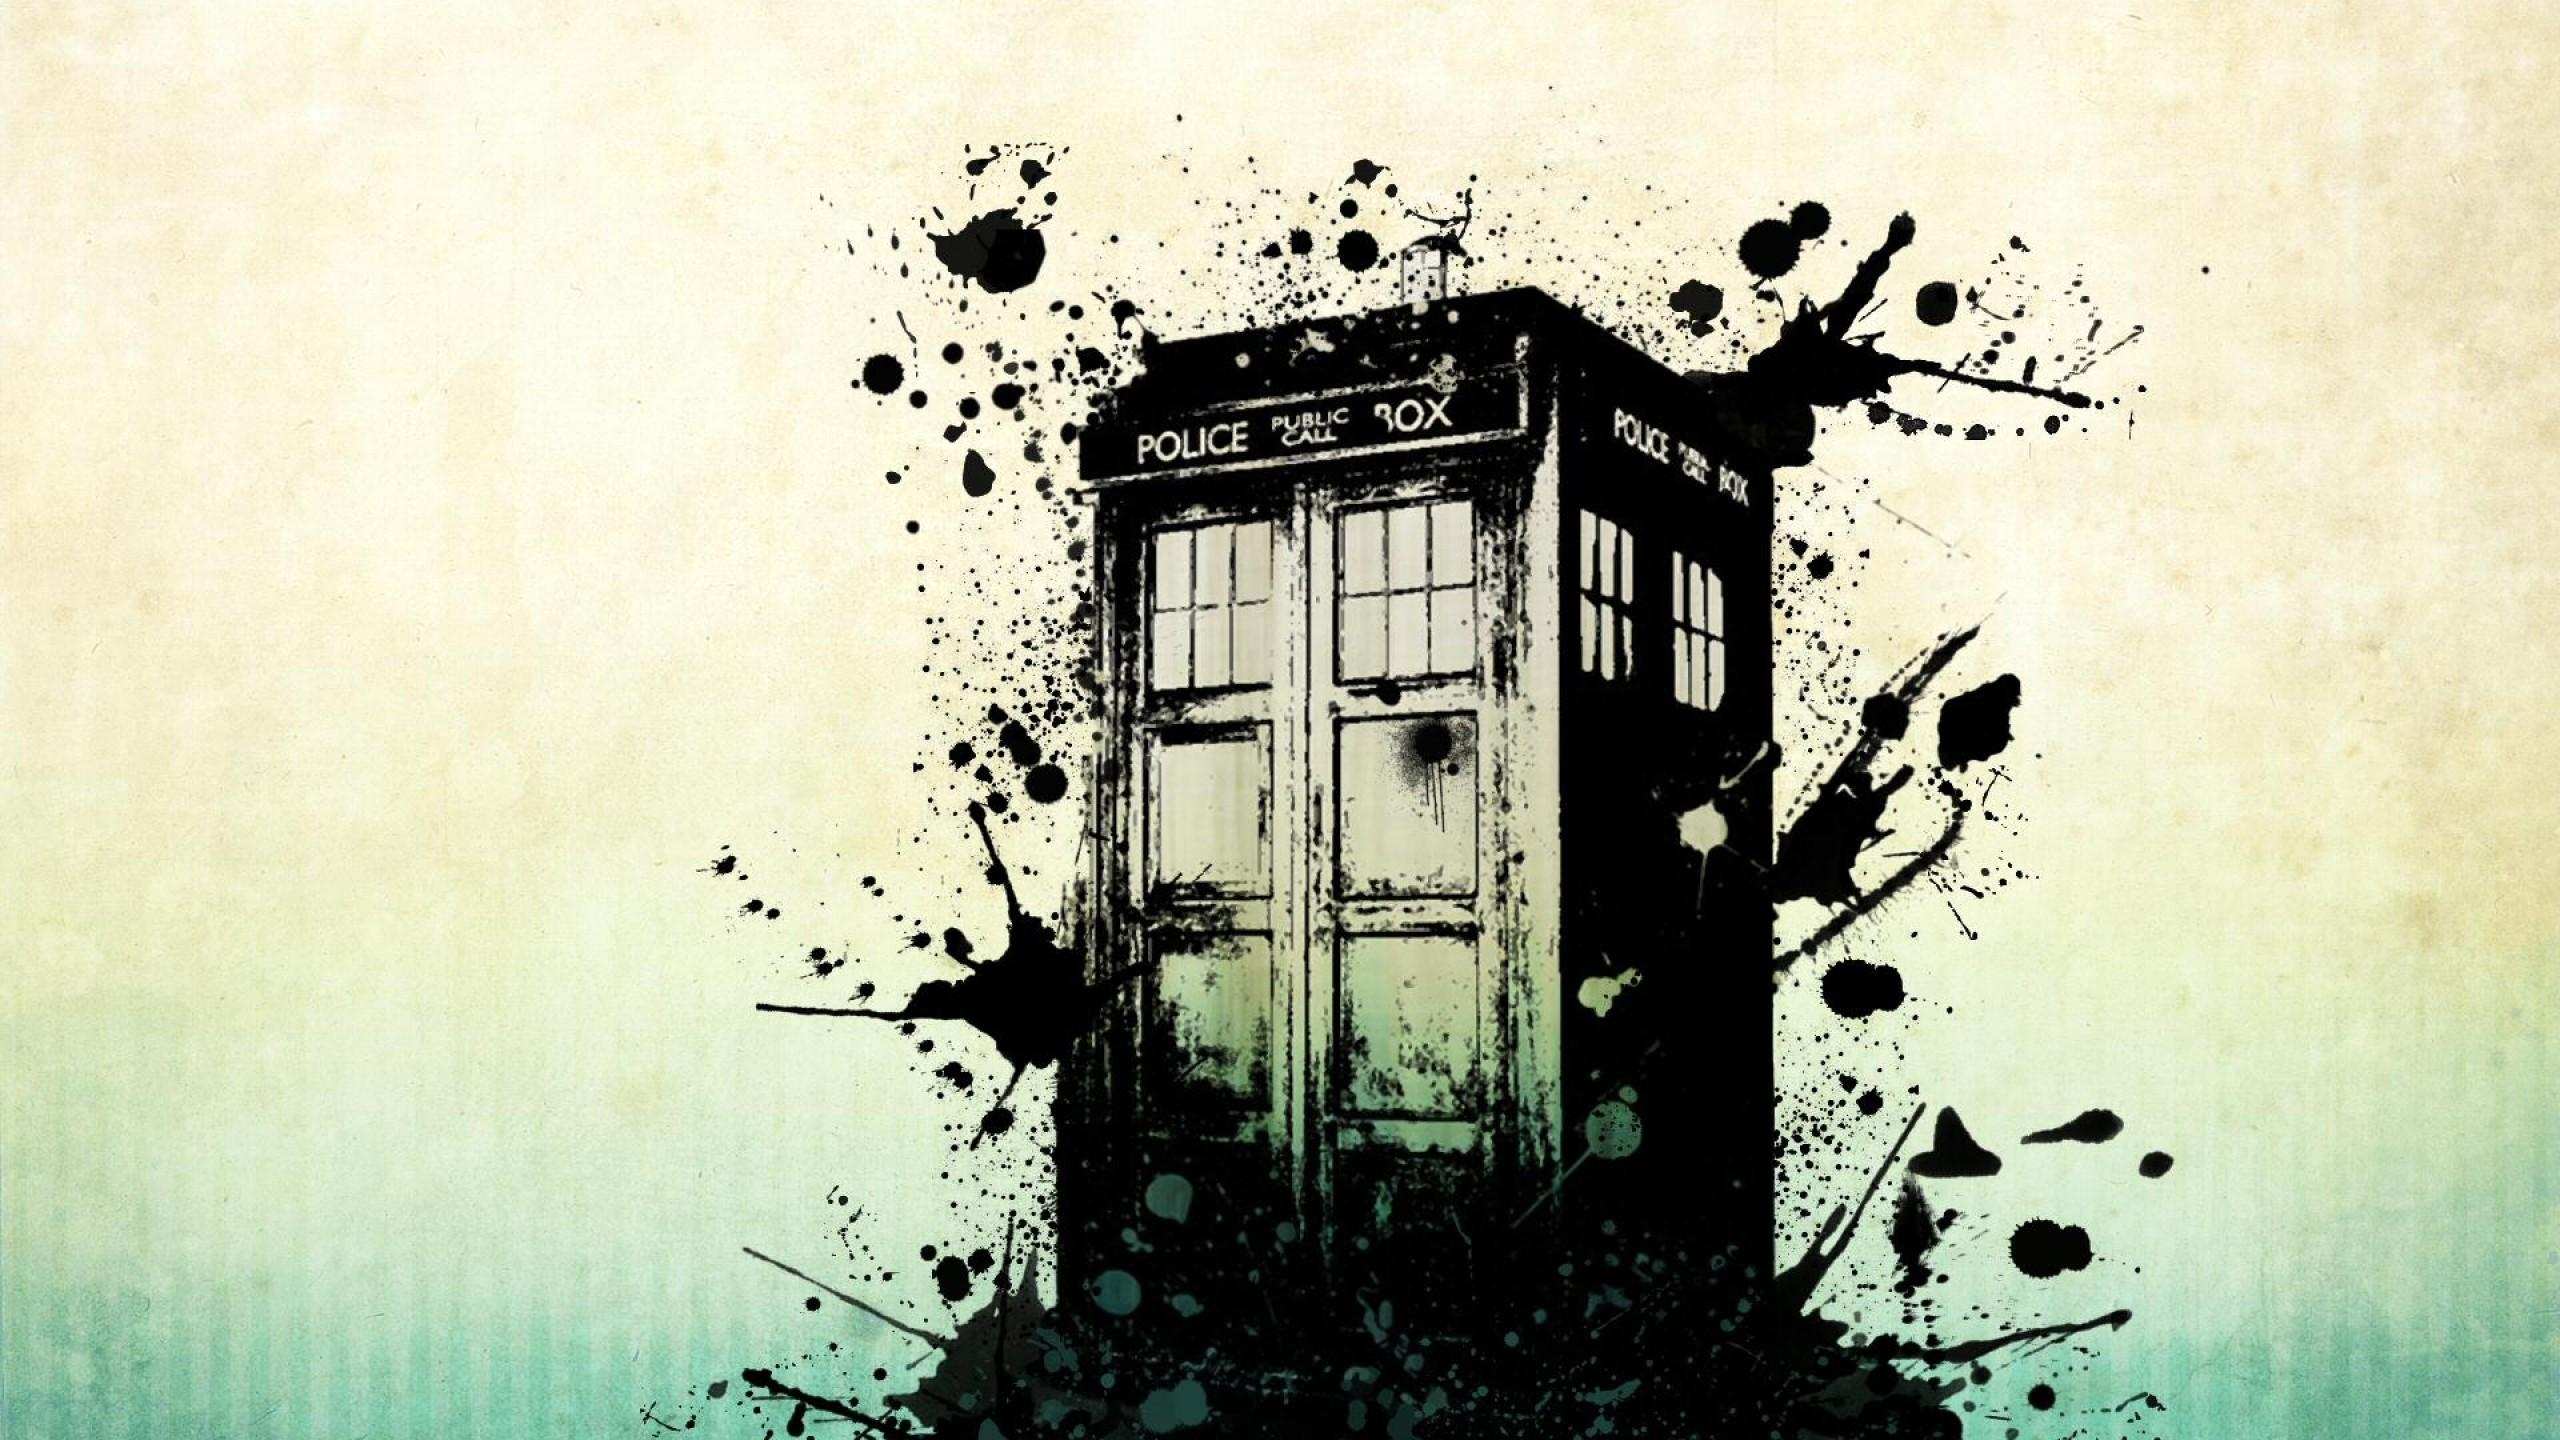 42 stocks at doctor who wallpapers group